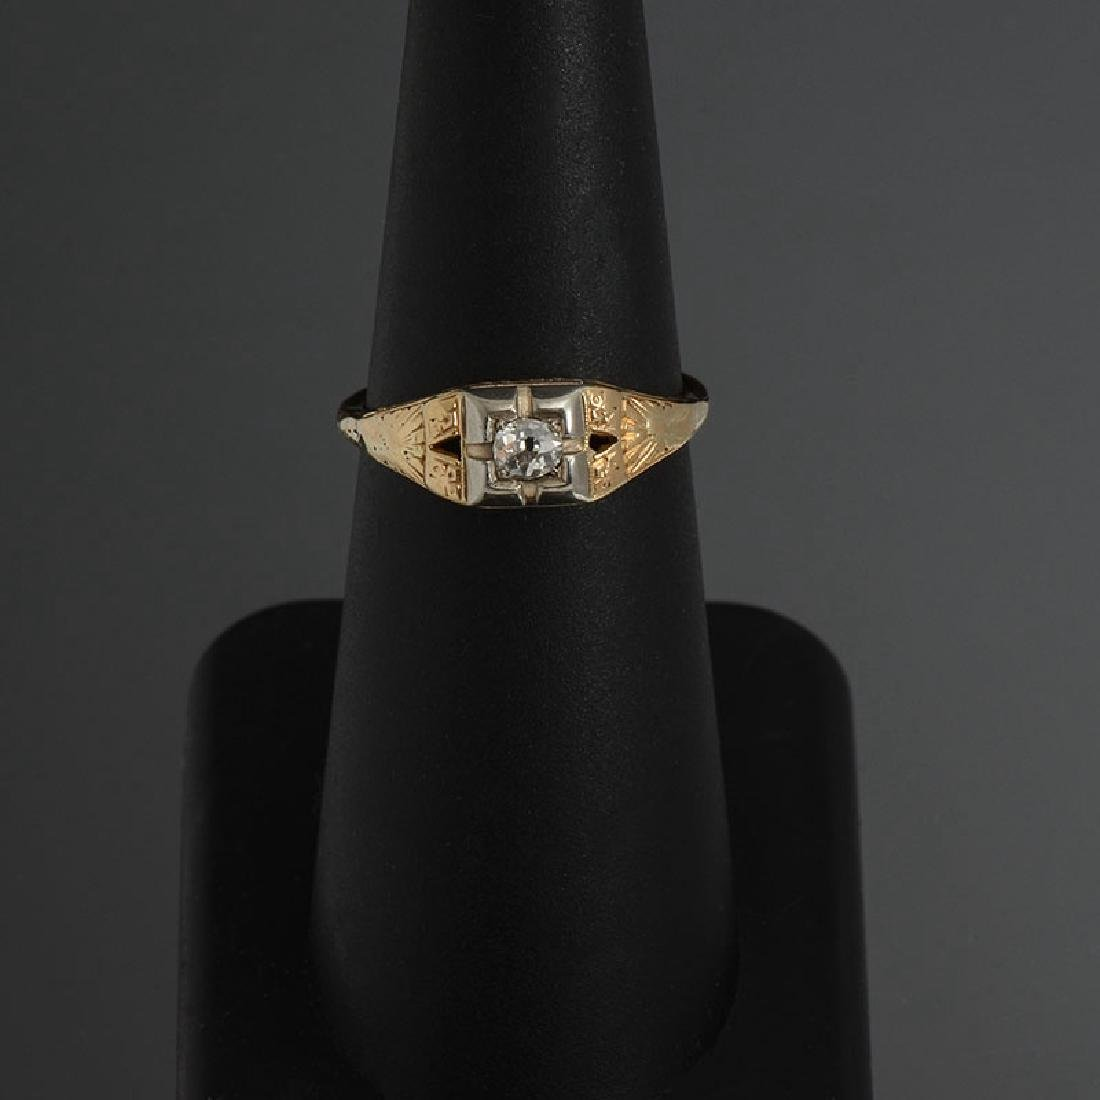 14K & DIAMOND EDWARDIAN FILIGREE SOLITAIRE RING - 2